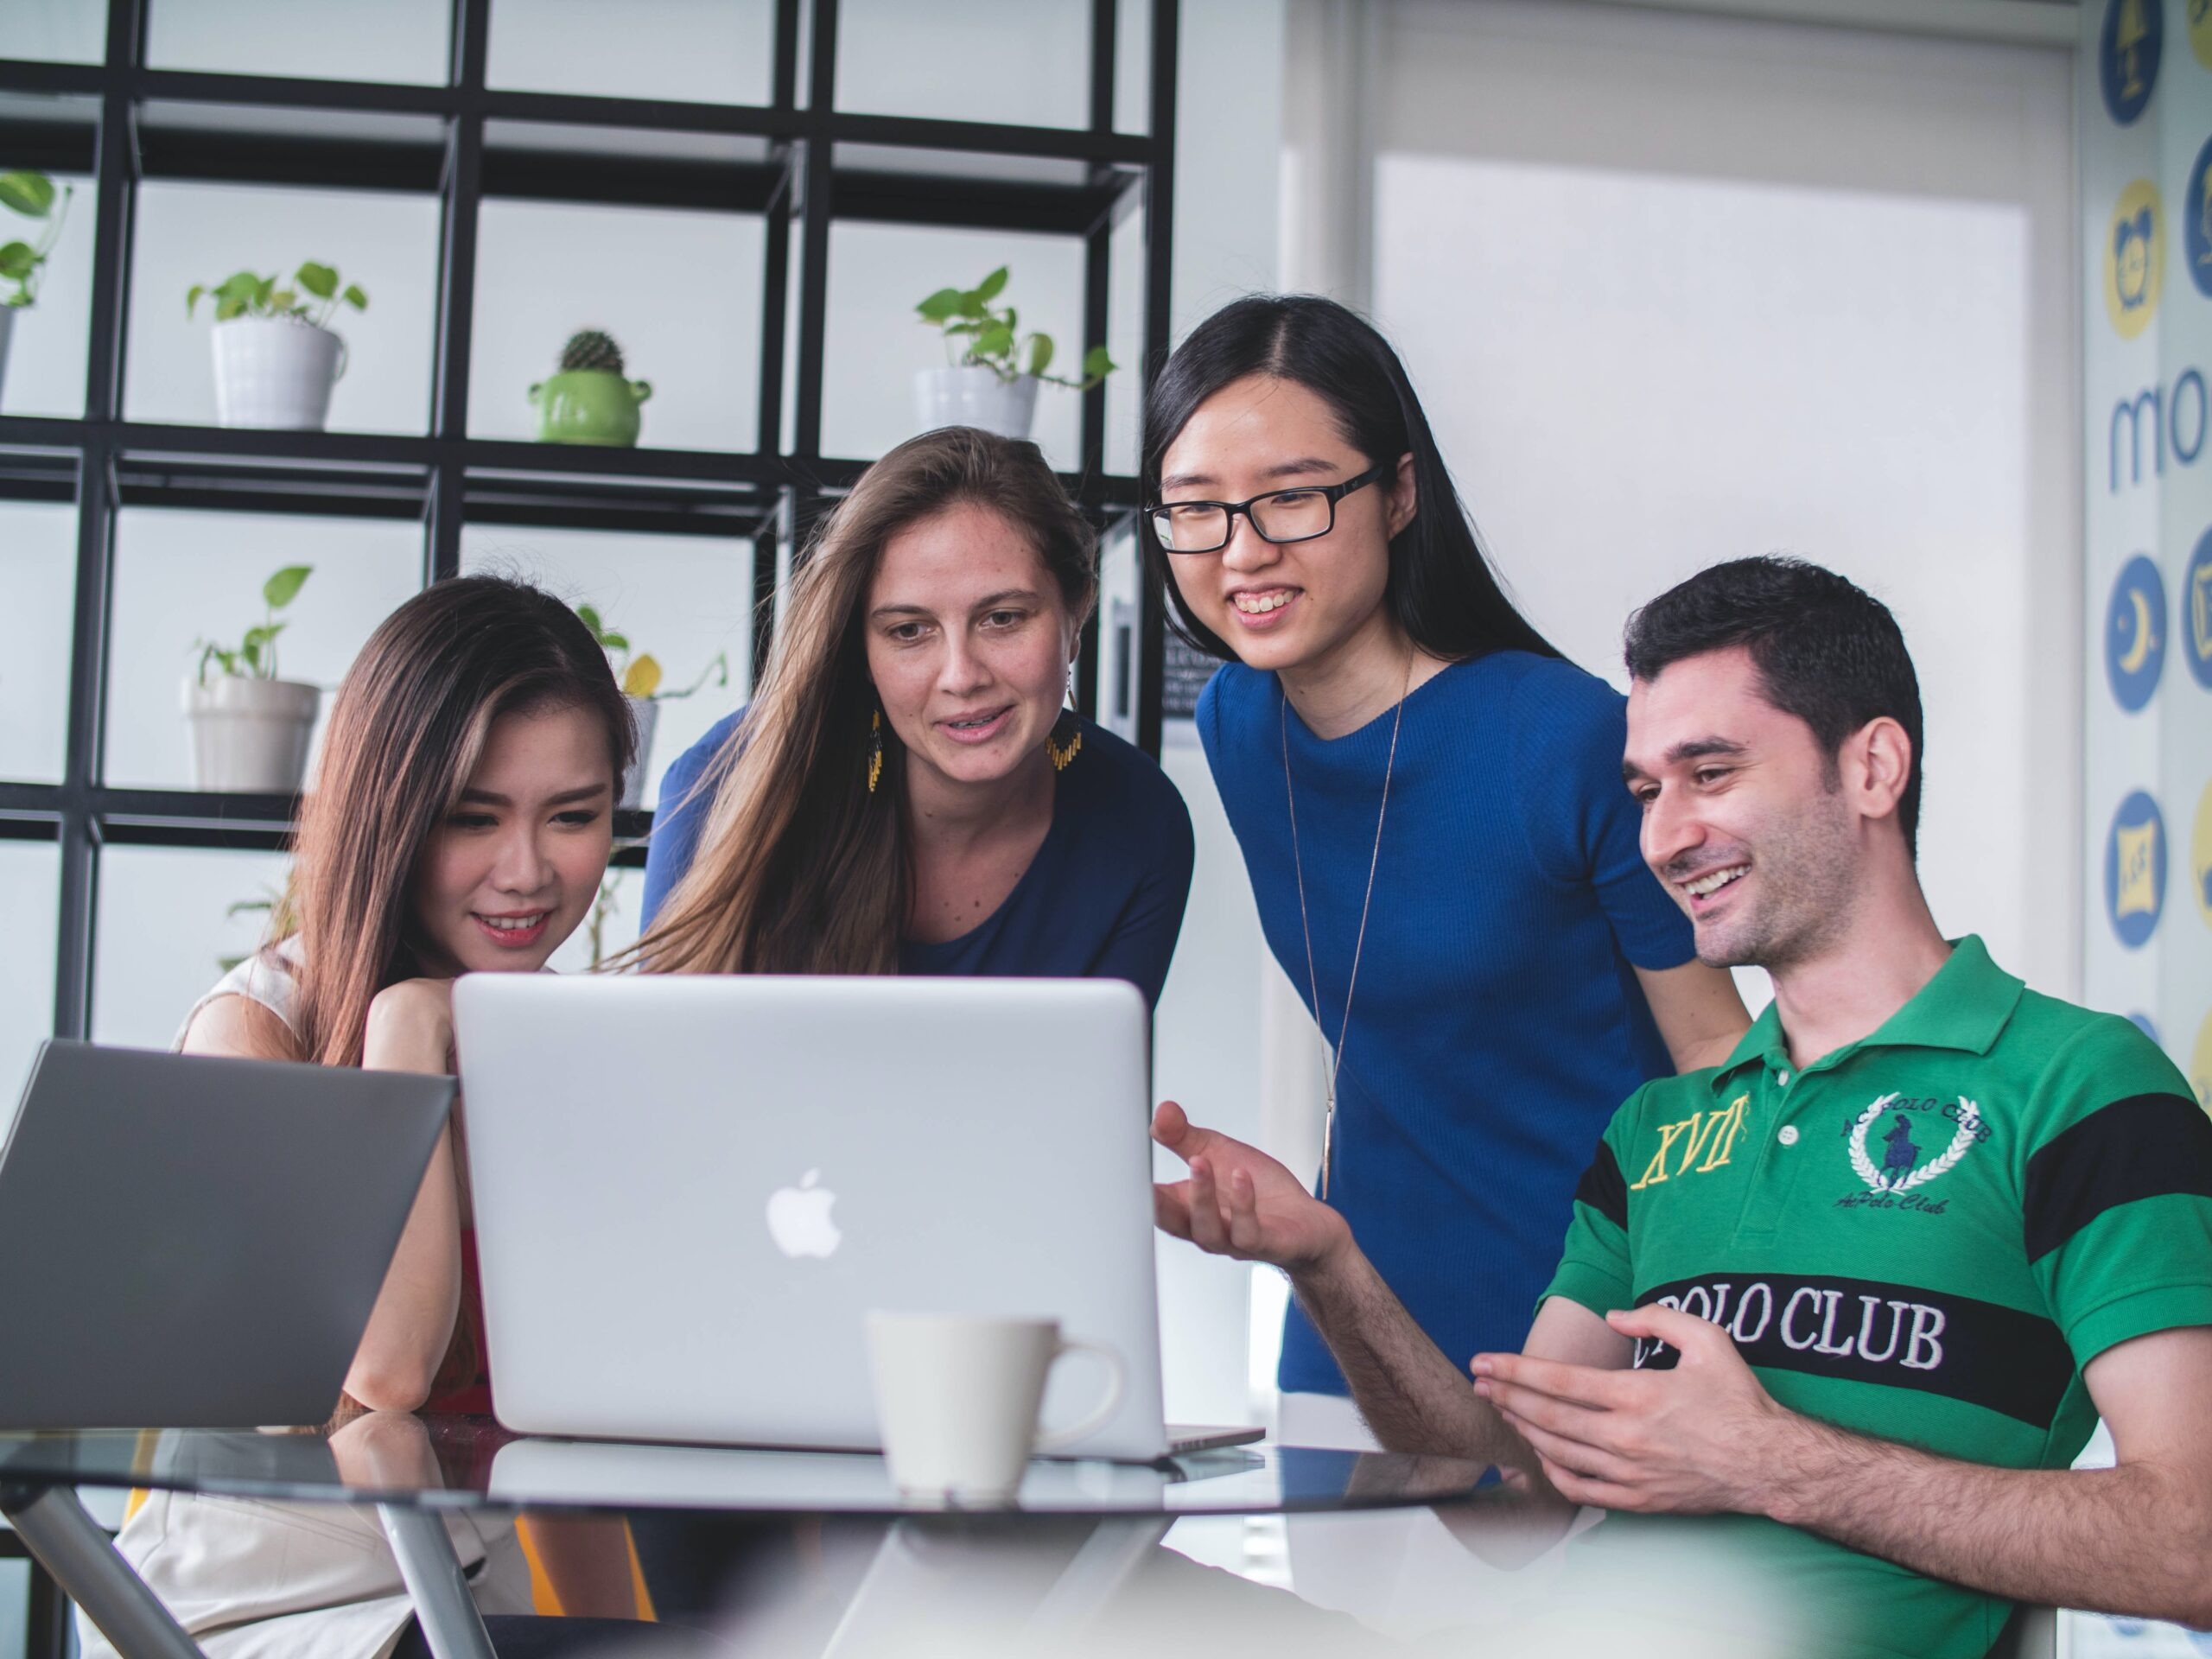 How to Attract and Retain Millennials as Employees: 3 Tips